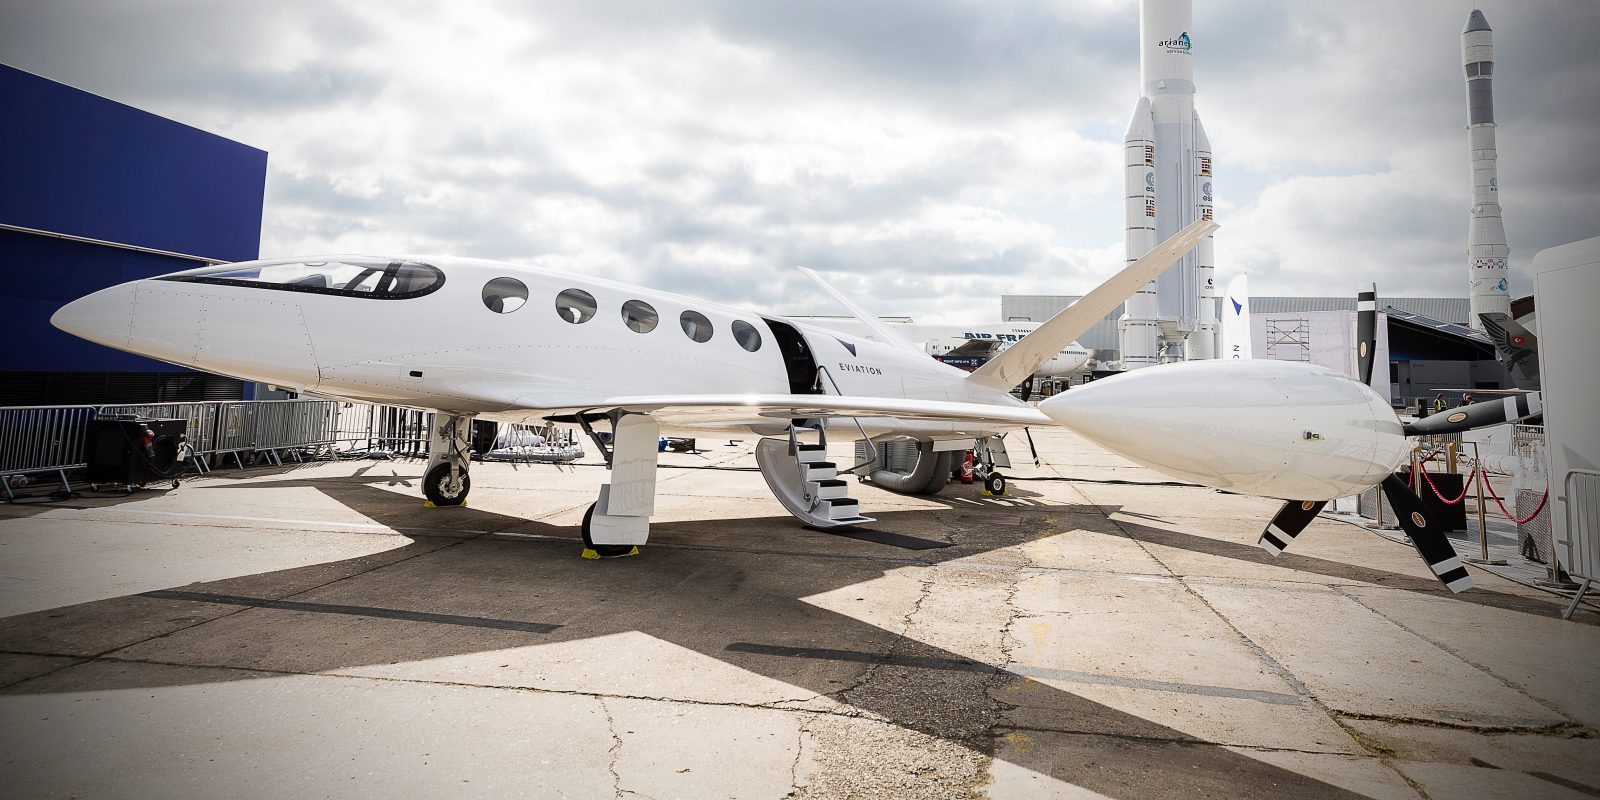 Israeli electric airplane will get light cooling system